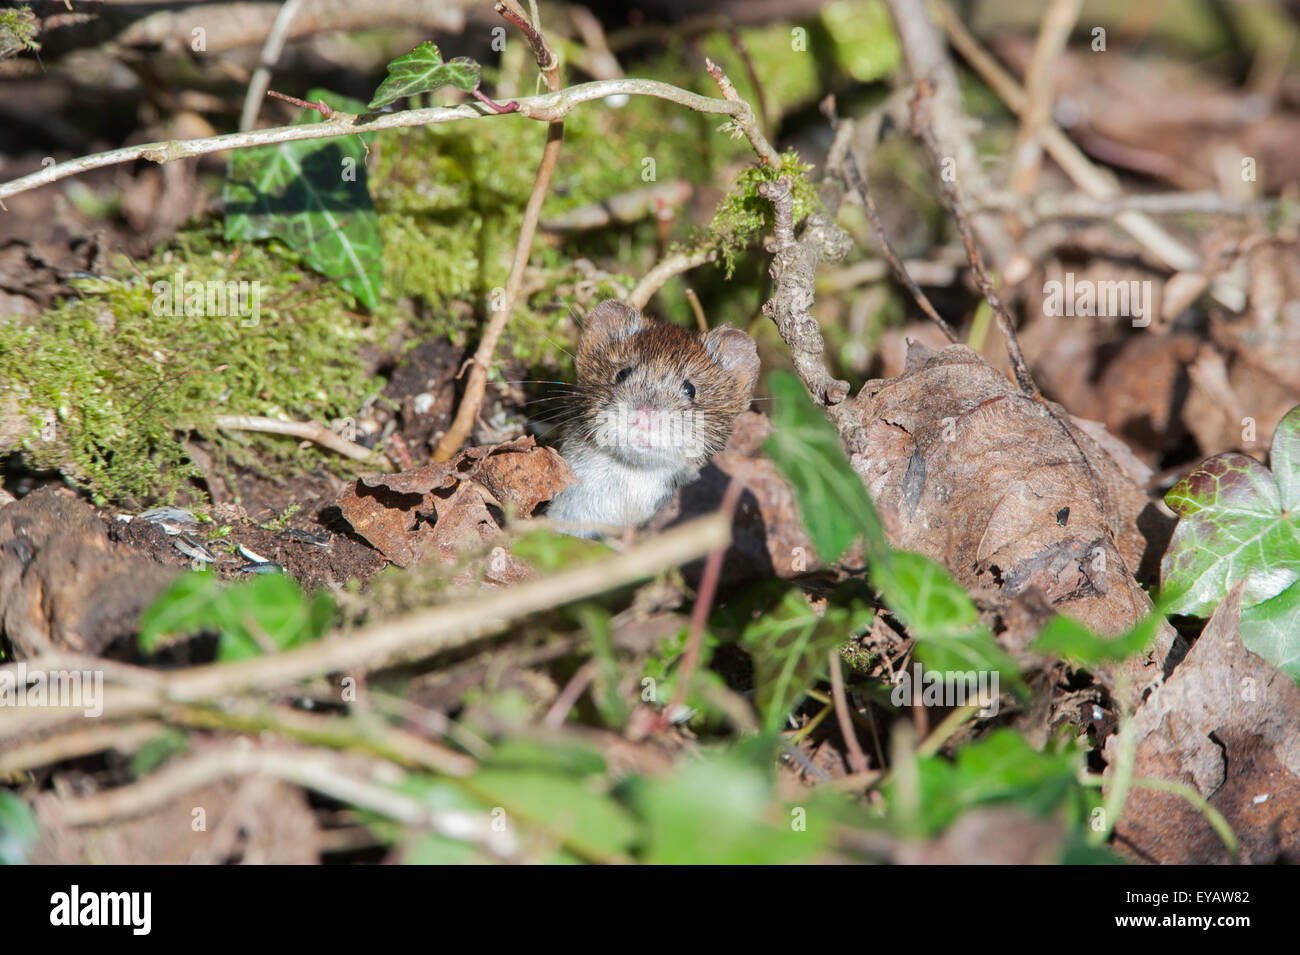 Bank Vole having a look out from hiding. - Stock Image